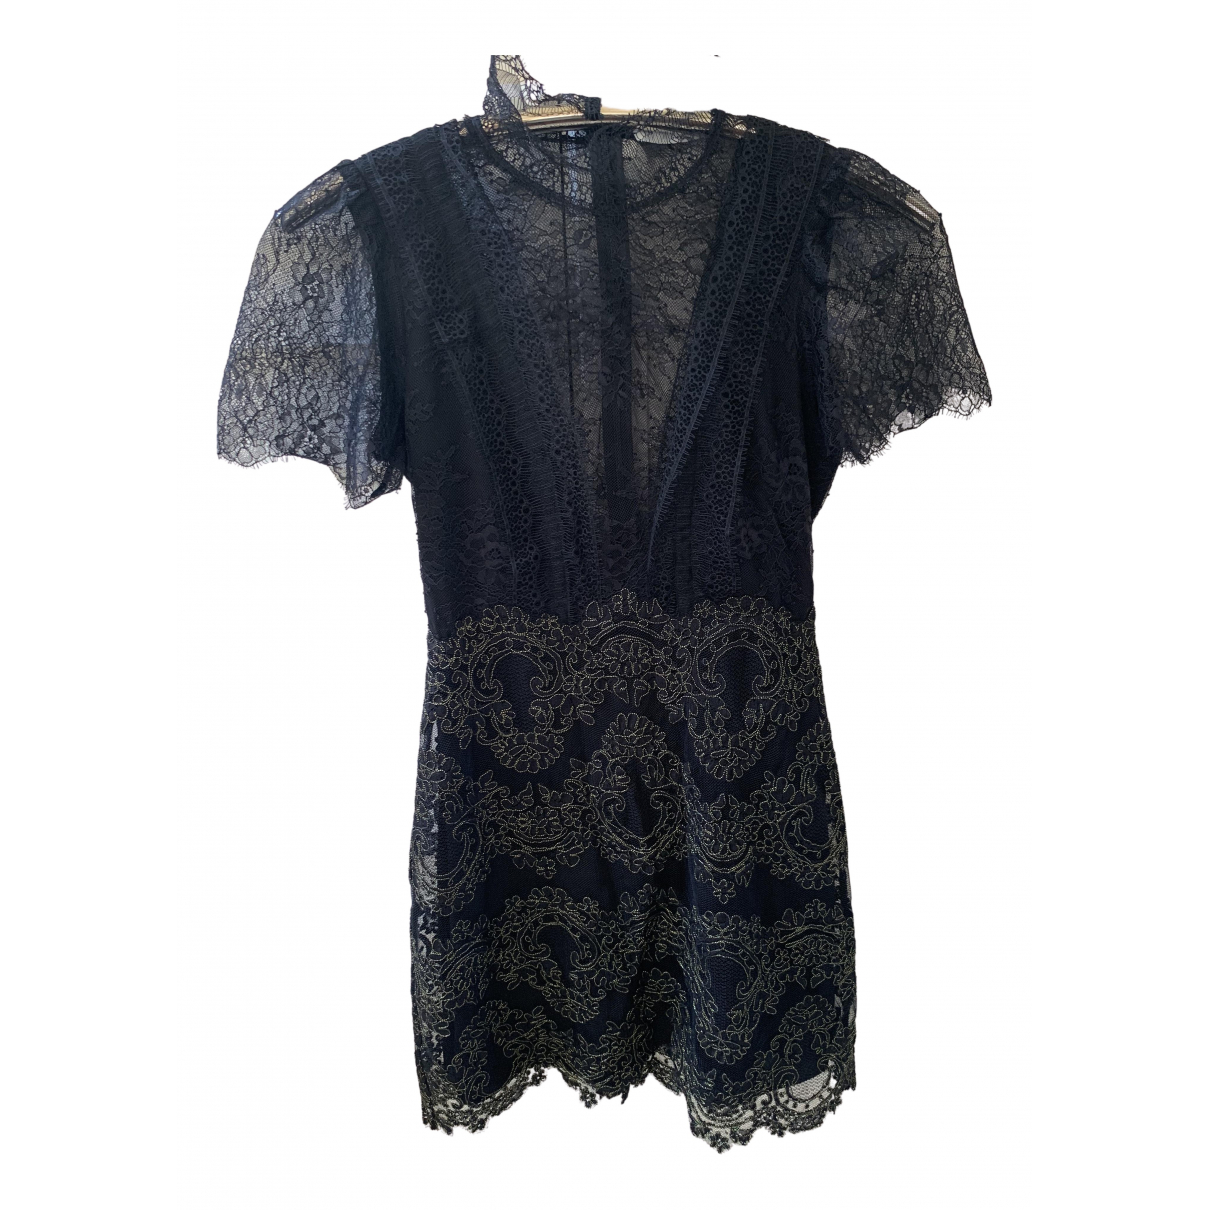 Sandro N Black dress for Women 36 FR